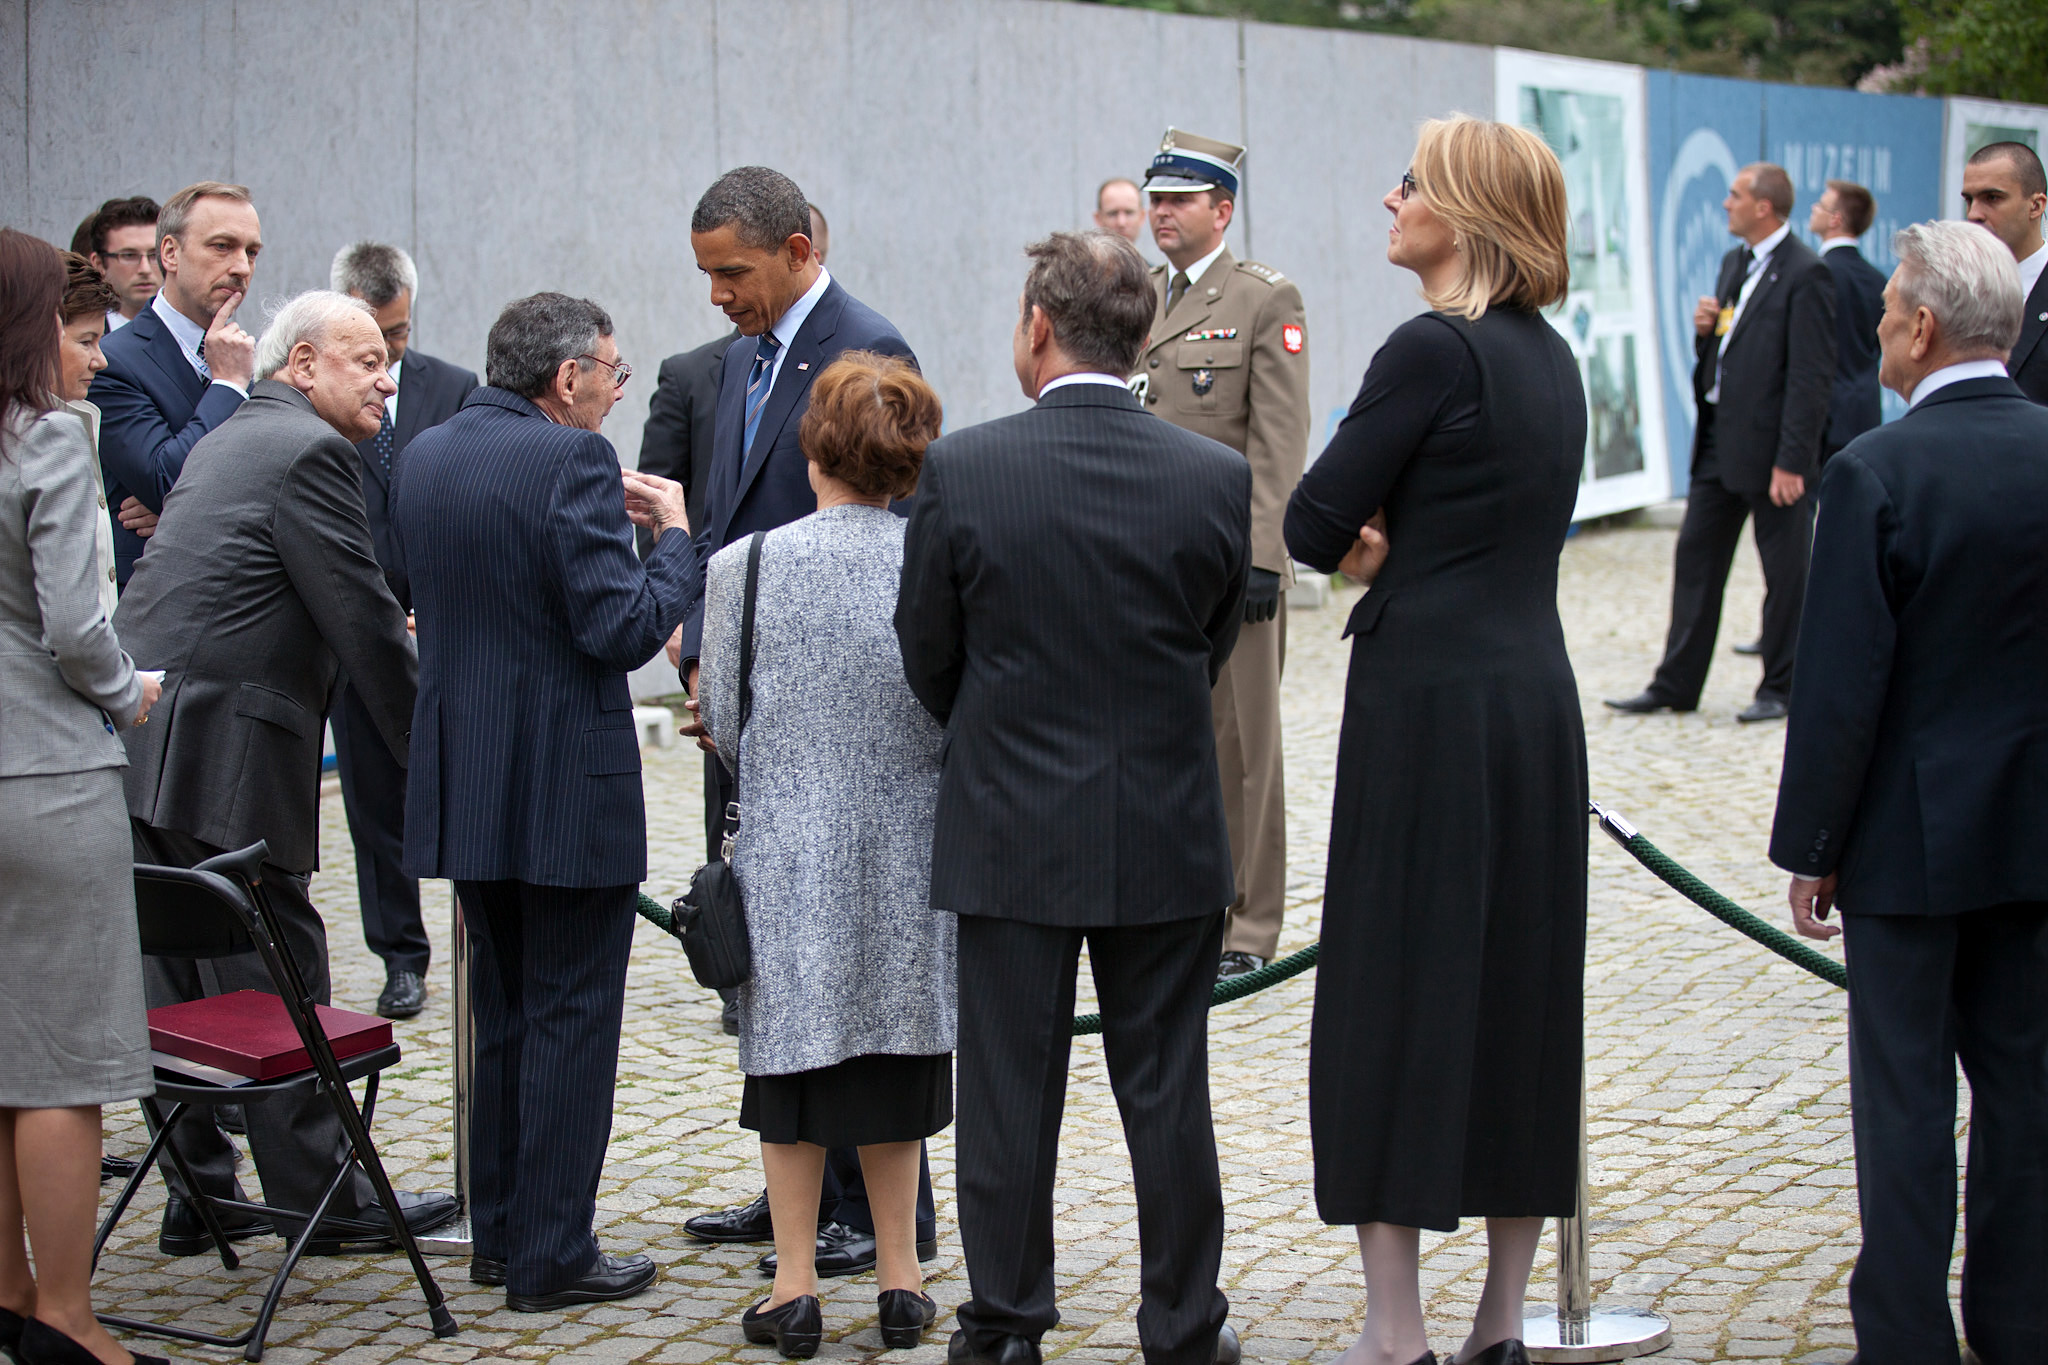 President Barack Obama visits with Jewish community leaders